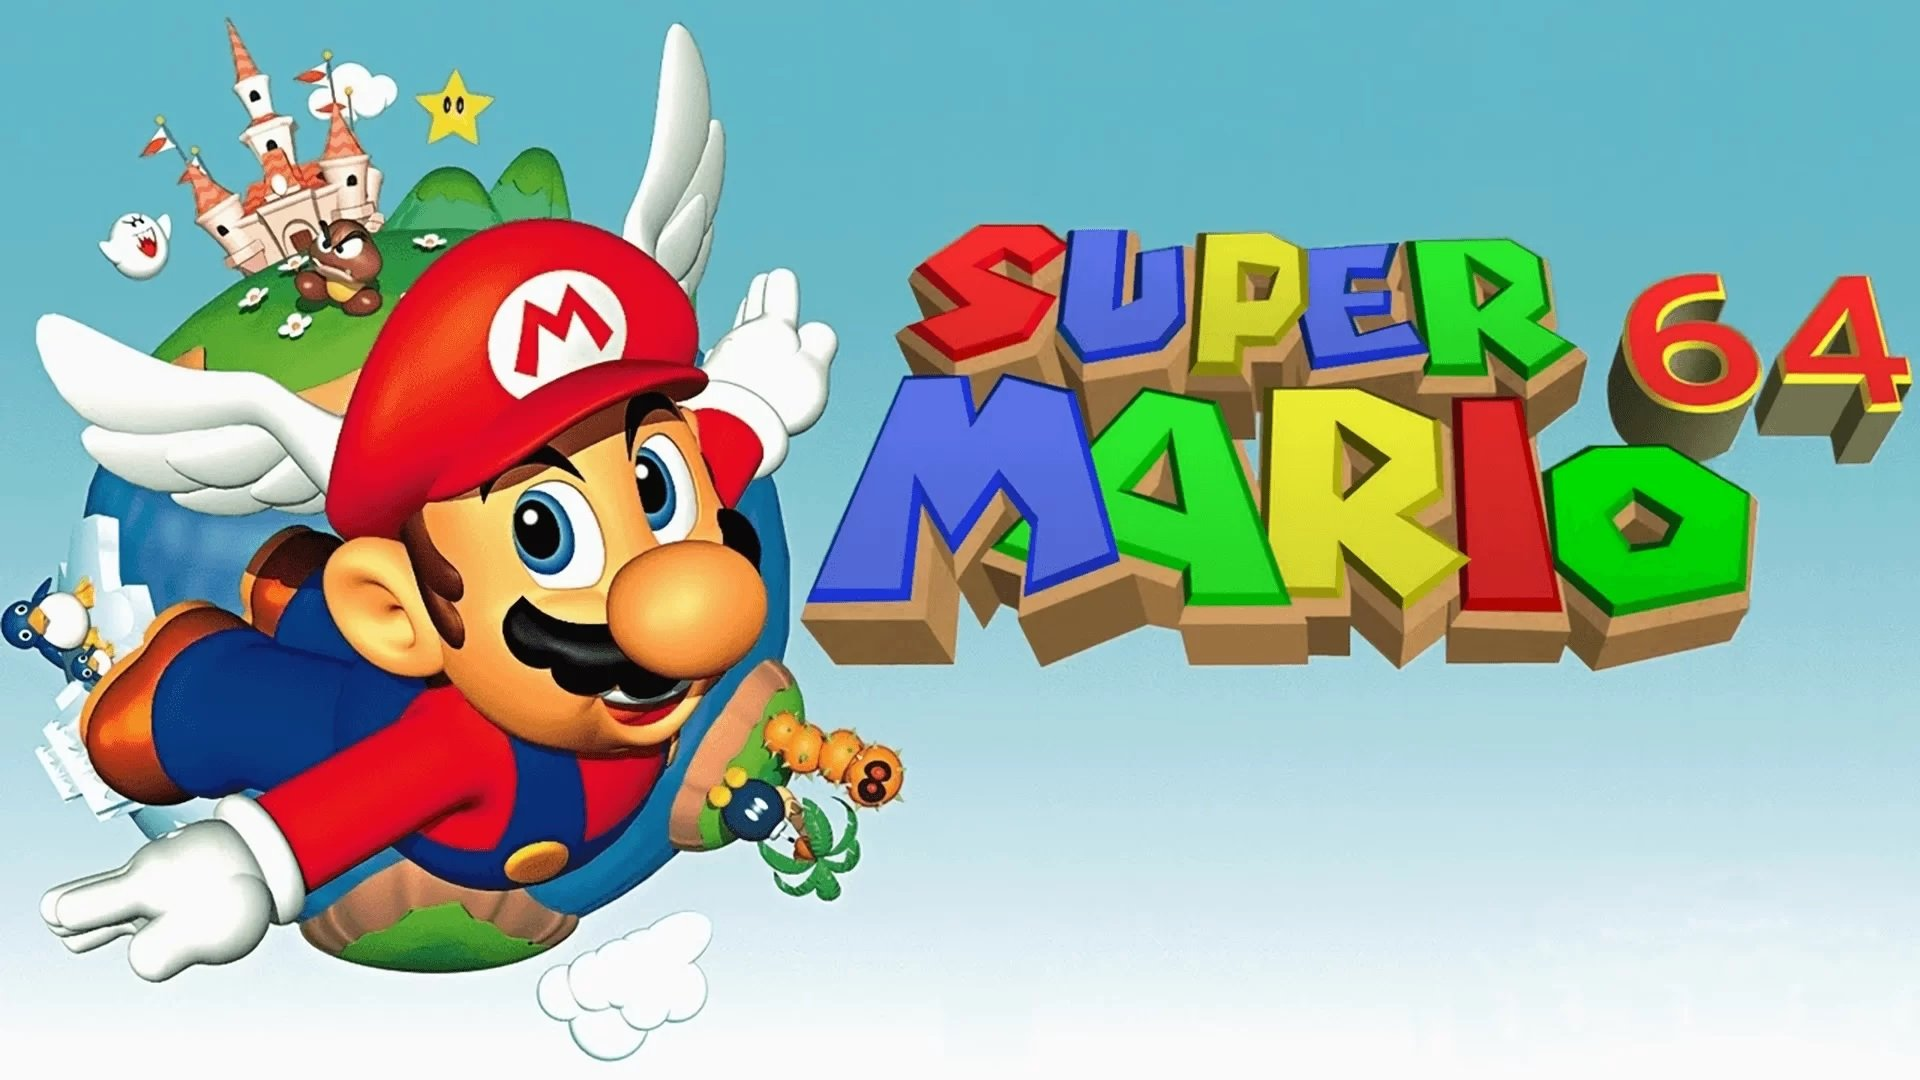 Mario 64 ported to PC